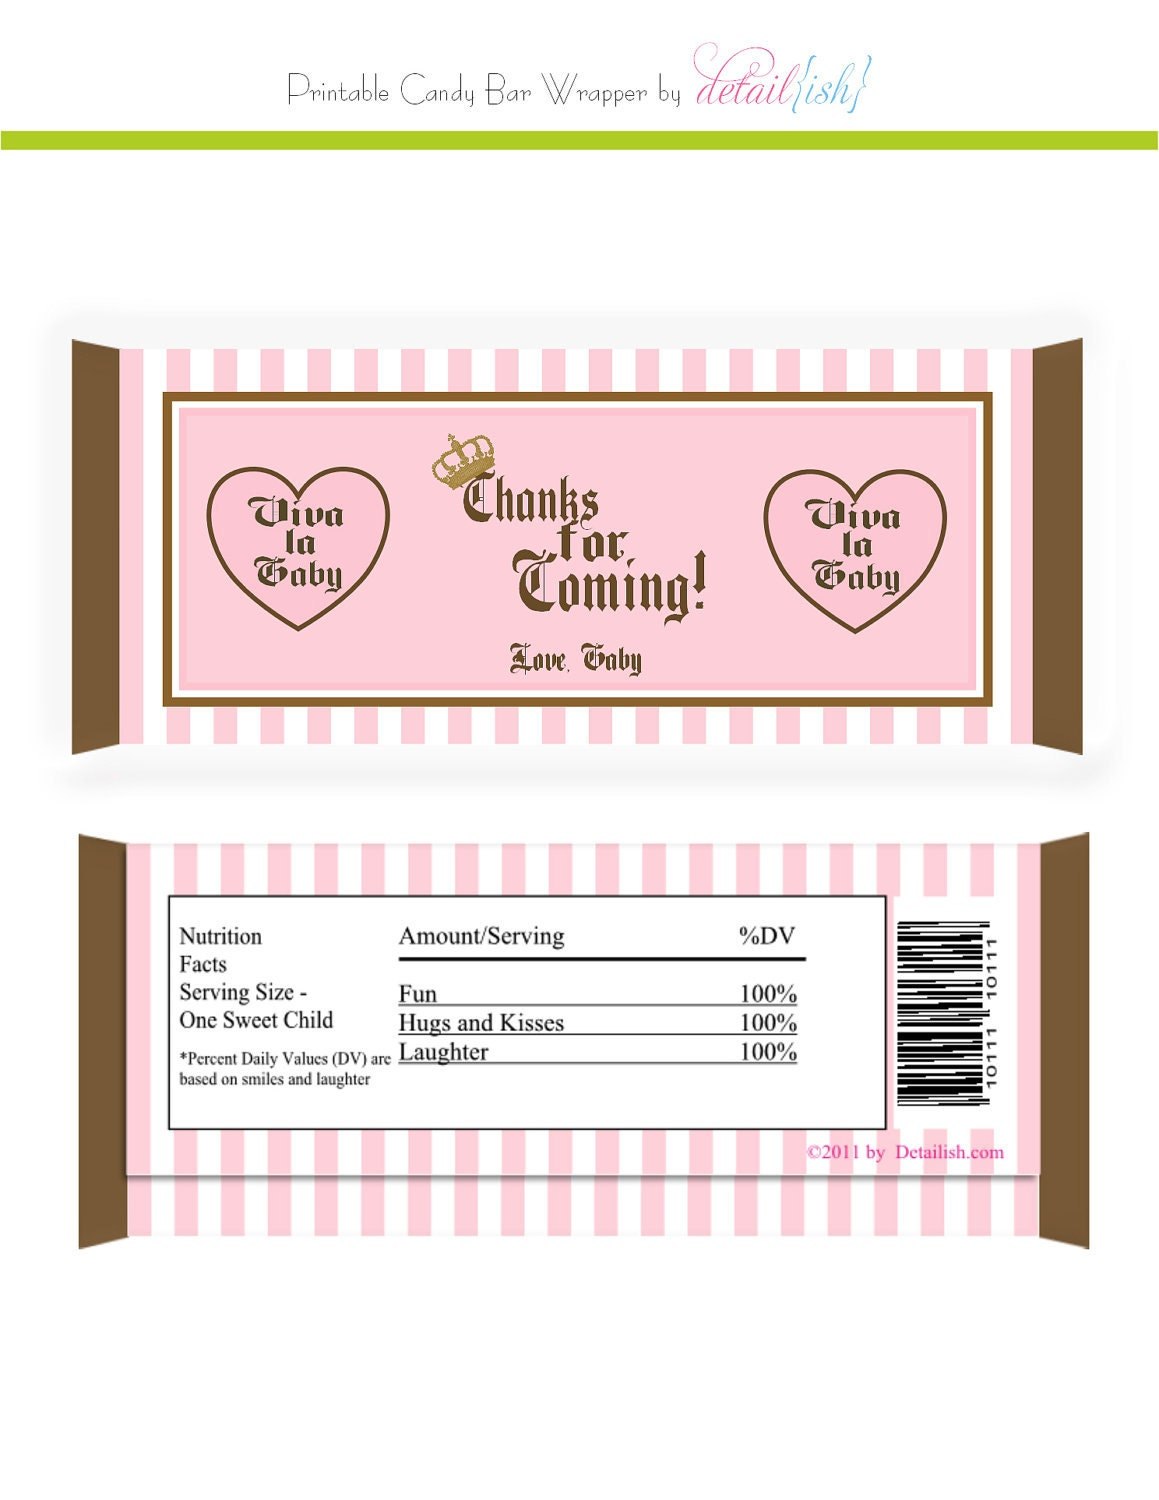 Candy bar wrapper templates free and editable car for Candy bar wrappers template for baby shower printable free